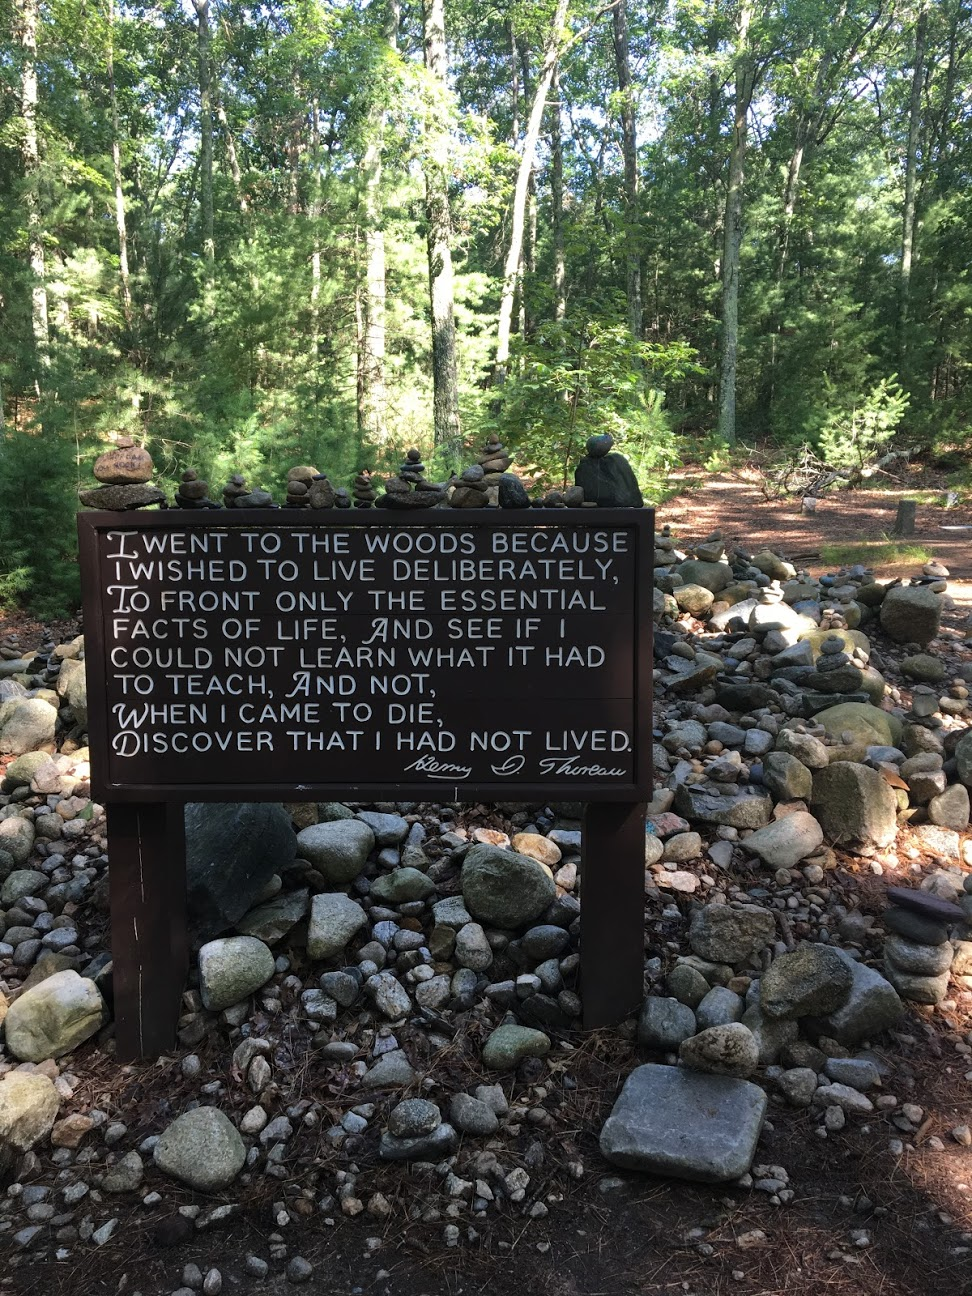 Sign at Thoreau's cabin site